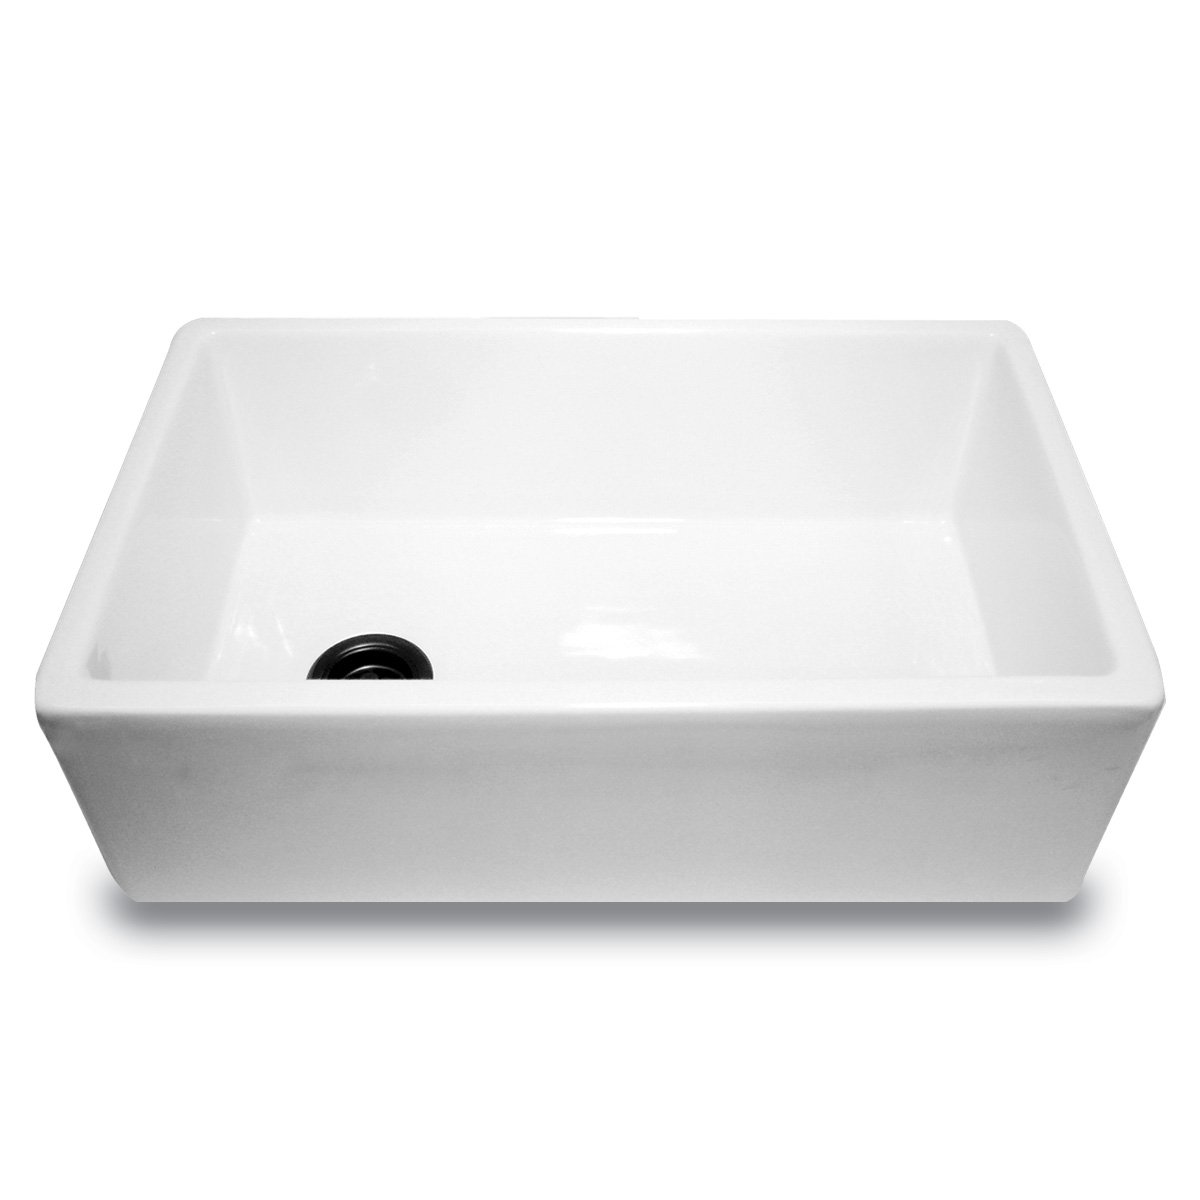 Nantucket Sinks FCFS30 30-Inch Farmhouse Fireclay Kitchen Sink with Offset Drain, White